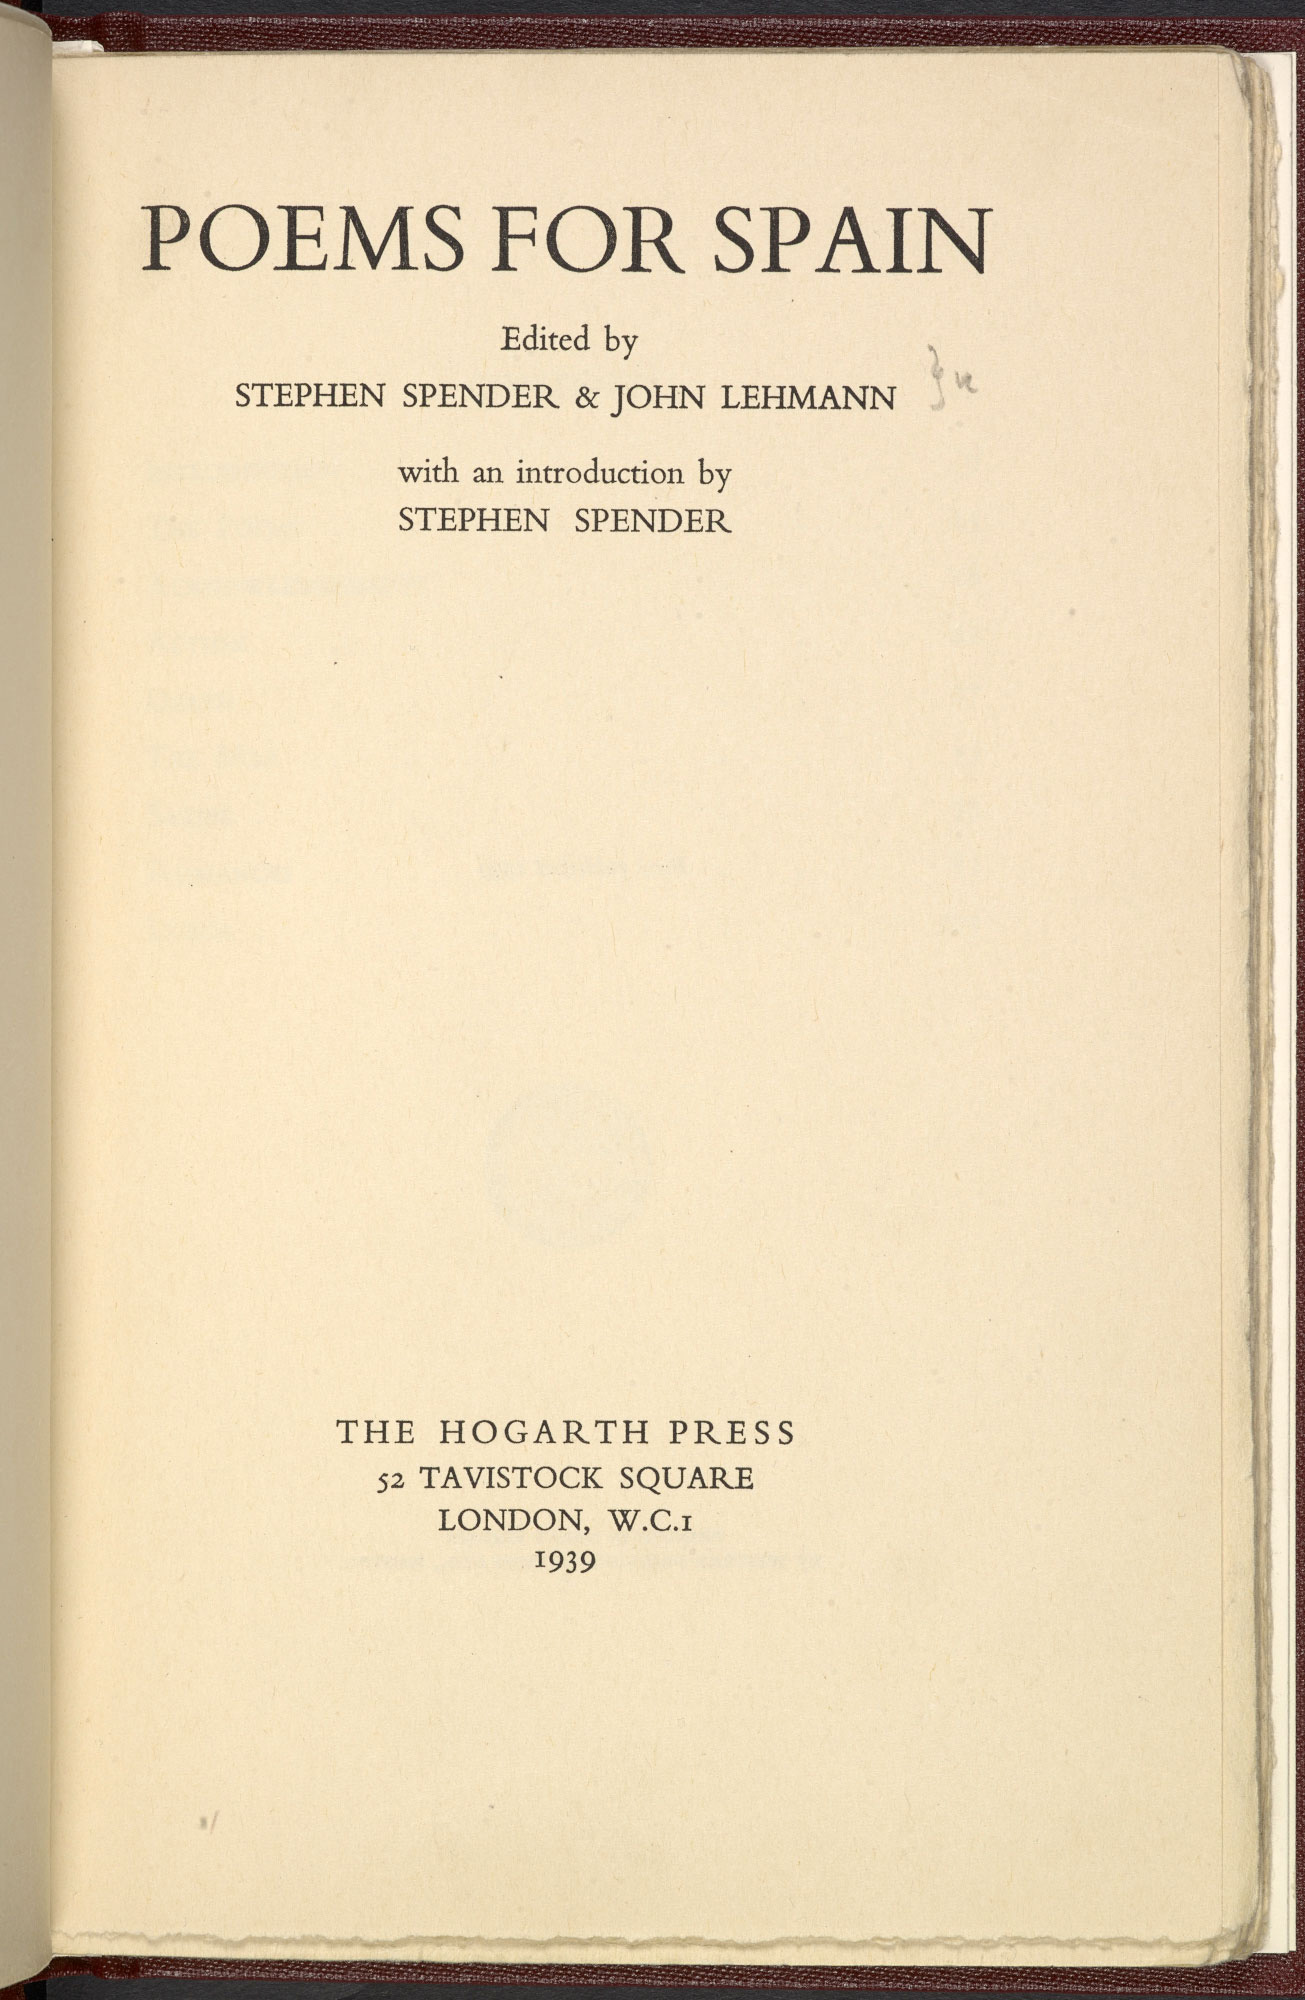 Poems for Spain, edited by Stephen Spender and John Lehman